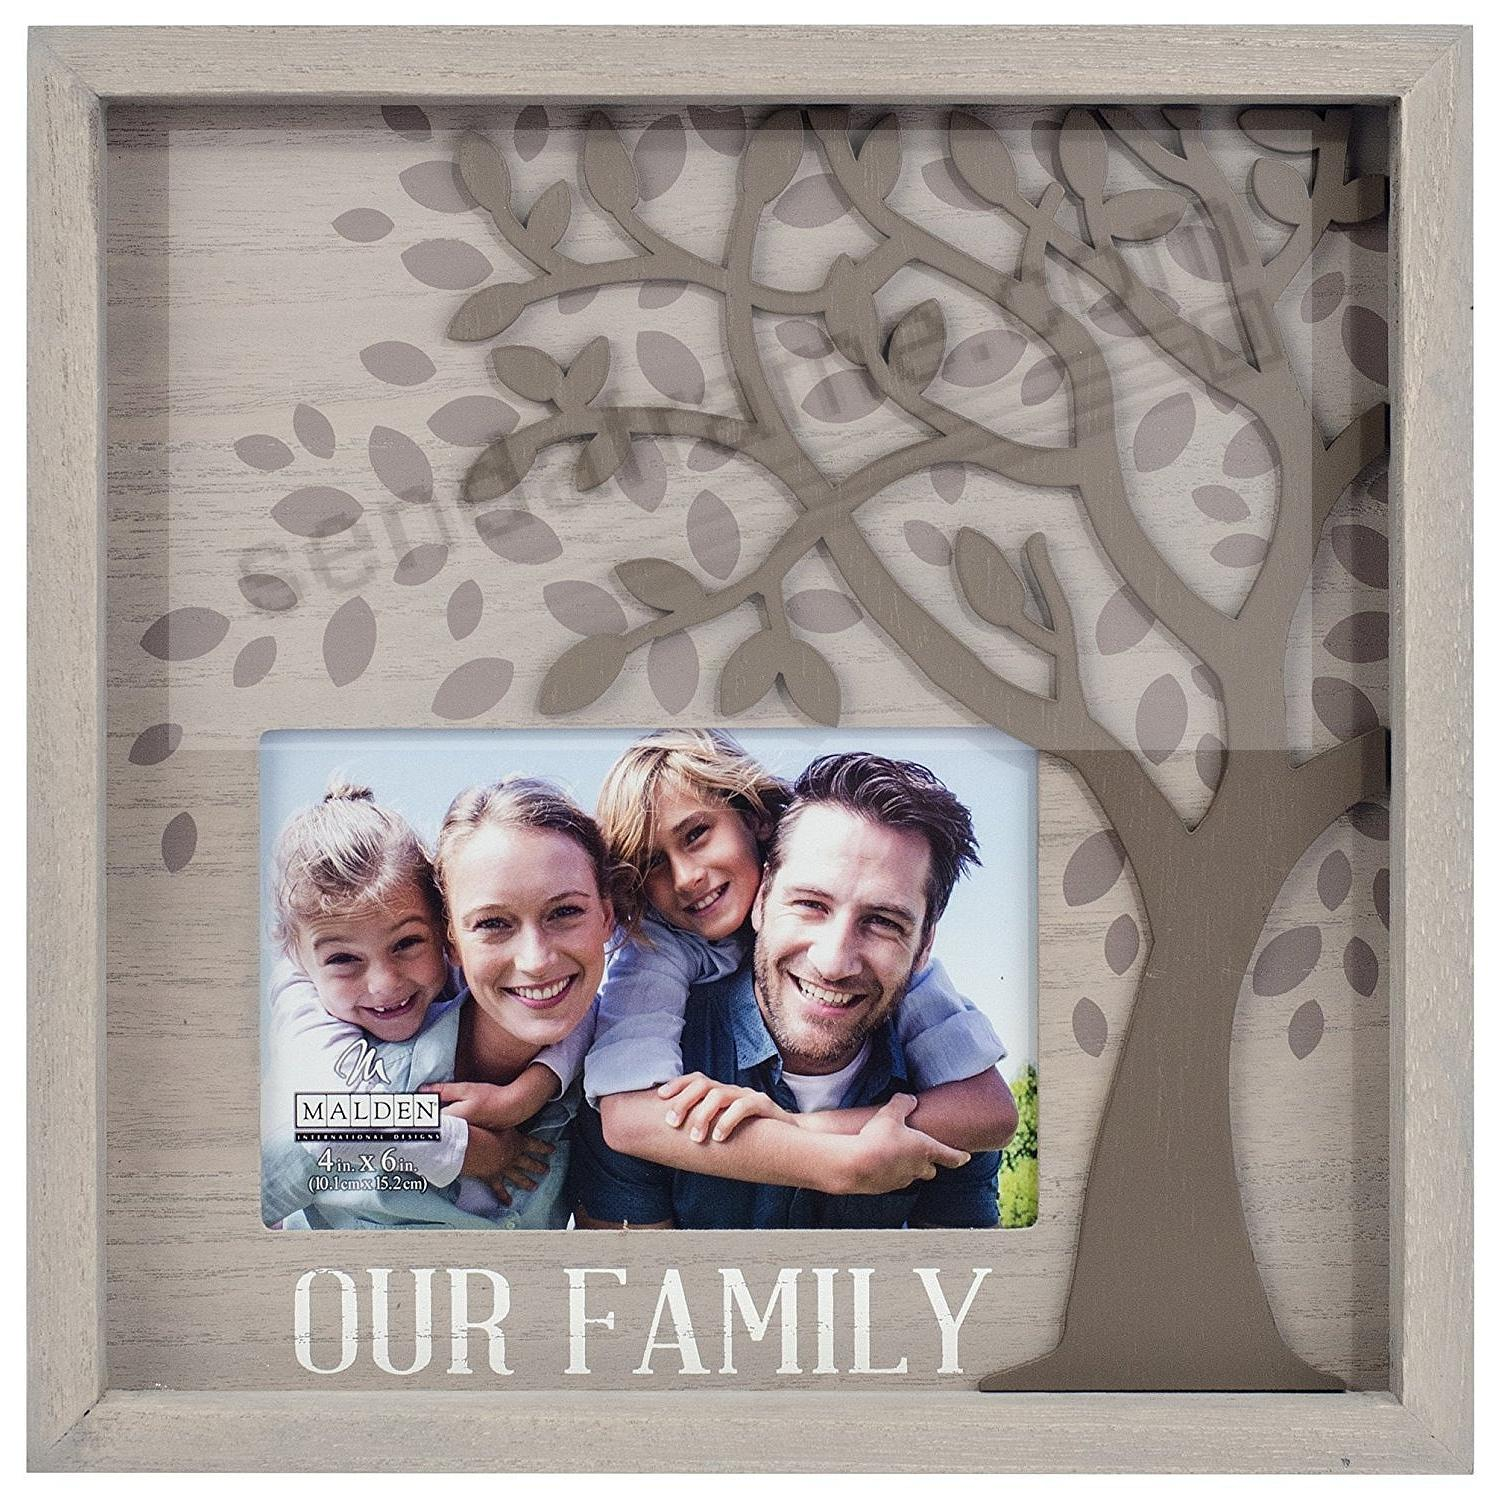 OUR FAMIILY Frame Decor by Malden®